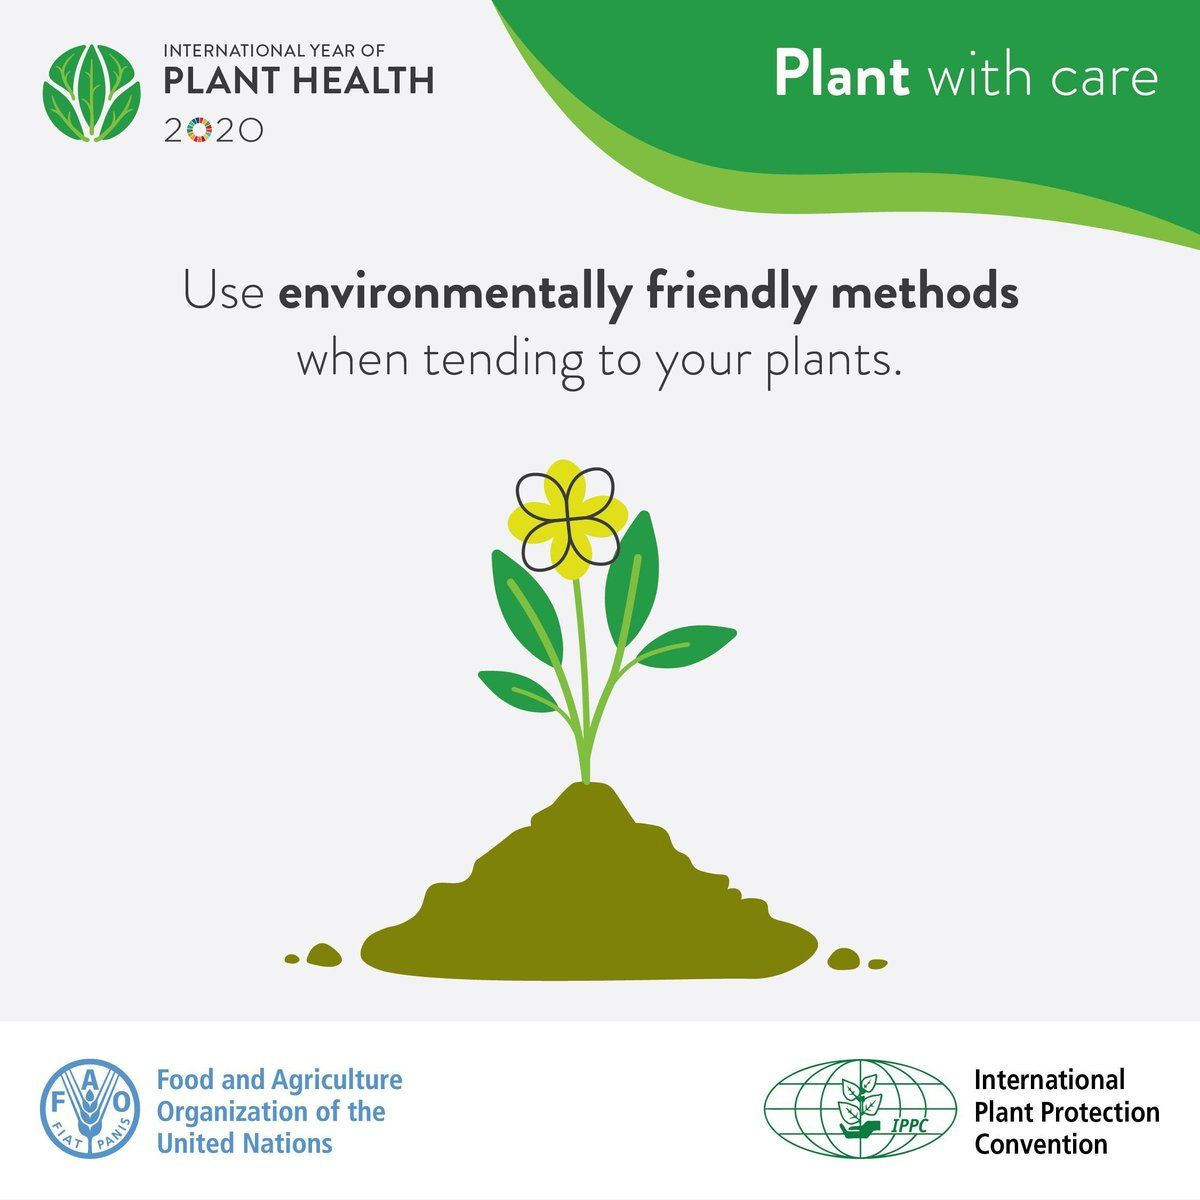 Do you have a garden? Be sure to take care of your plants and the environment by using environmentally friendly methods.   Here is more on what you can do to protect #PlantHealth: https://t.co/5zQMaHa5RY https://t.co/pYyd98cBLL